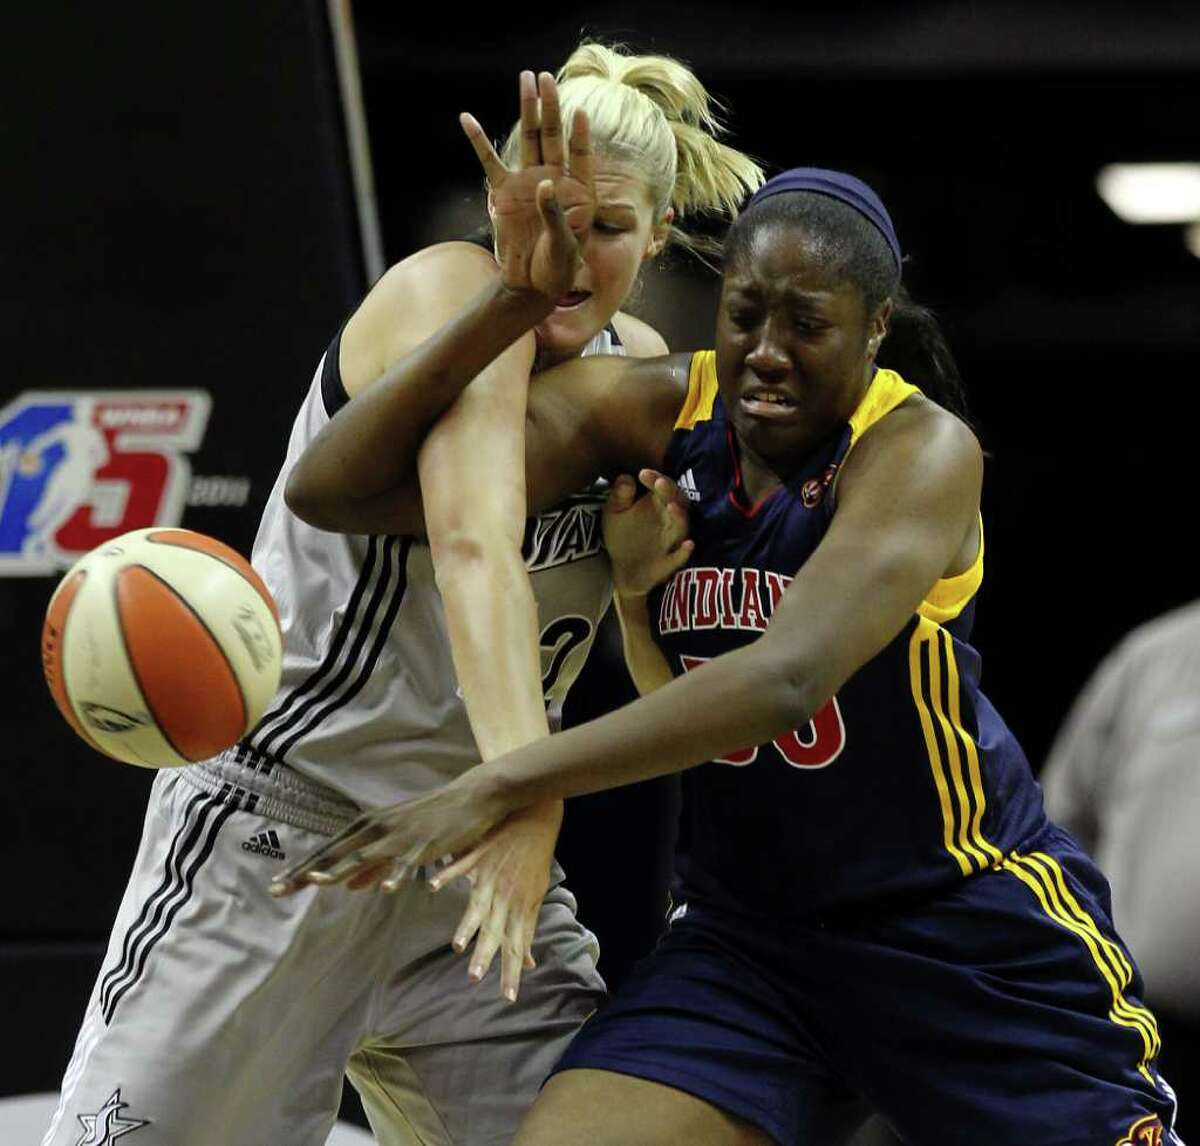 San Antonio SilverStars' Jayne Appel (32) and Indiana Fevers' Jessica Davenport (50) get tangled while attempting to gain control of the ball in the second half at the AT&T Center in San Antonio on Tuesday, August 16, 2011. Silverstars lose to the Fever, 63-65. Kin Man Hui/kmhui@express-news.net